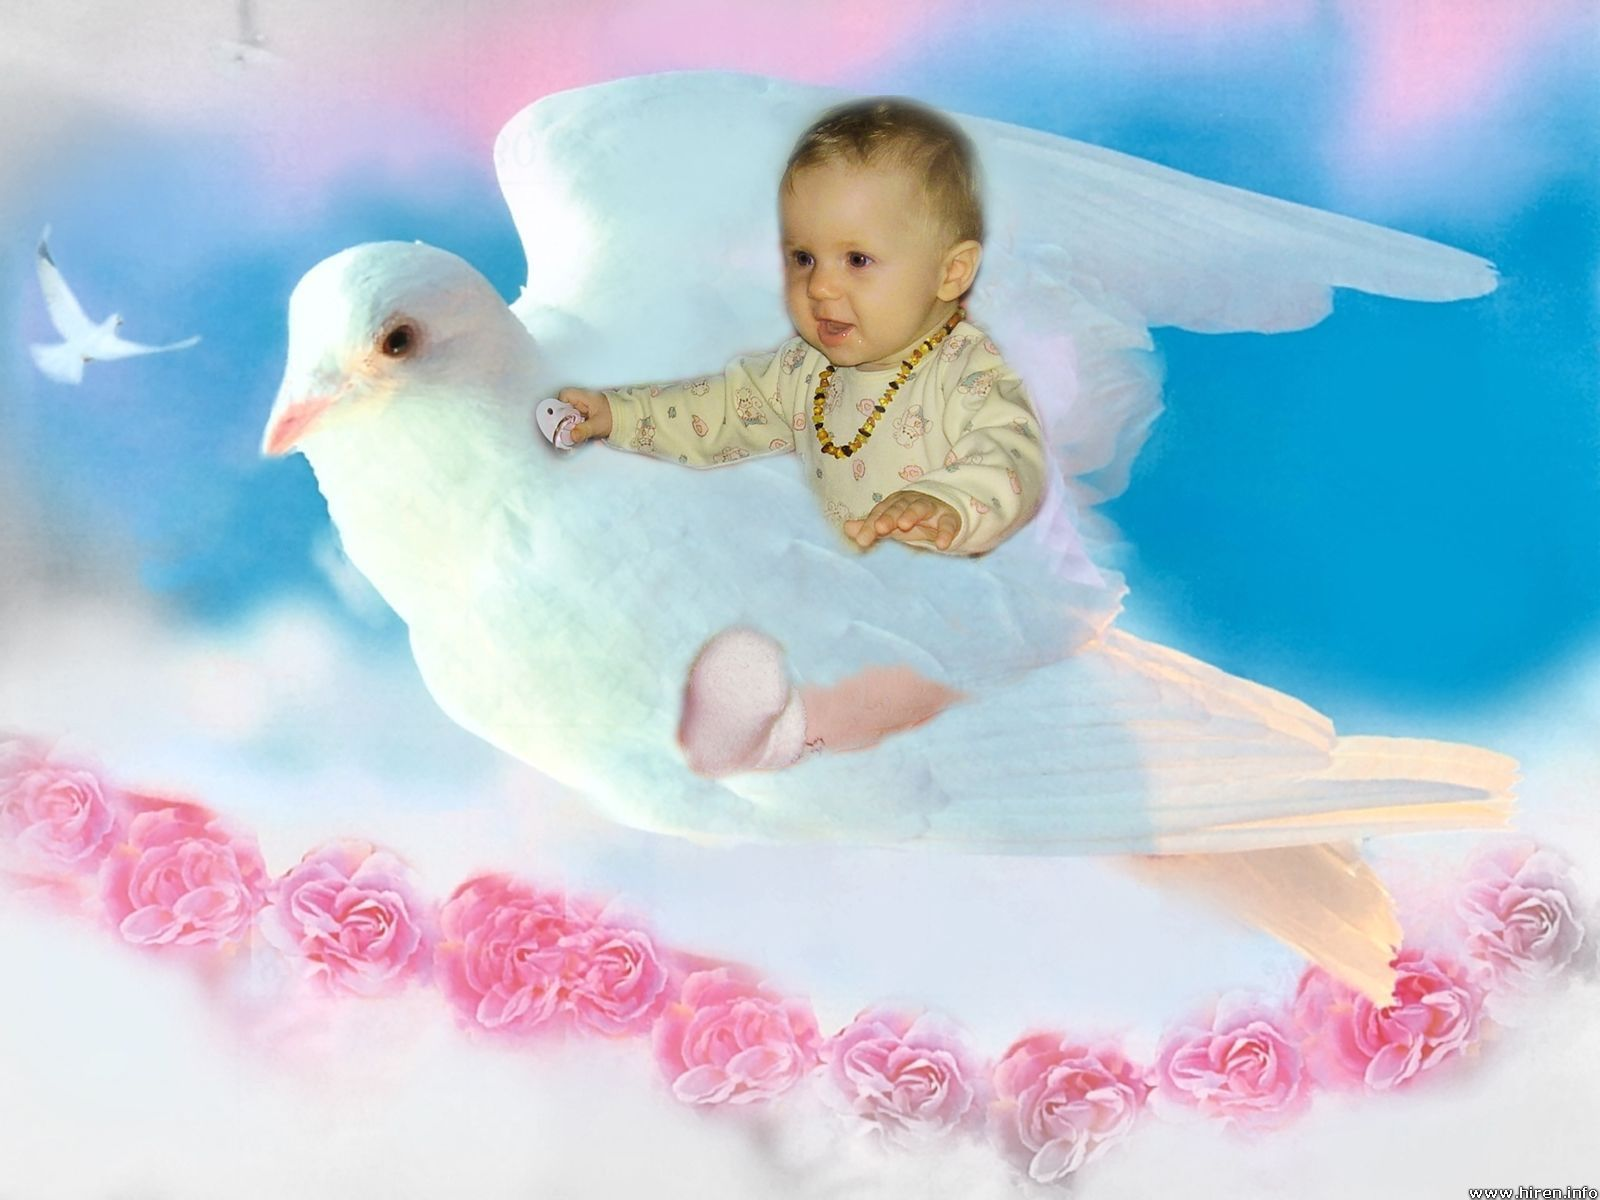 Baby Love Wallpaper Cute Babies And Angel 1600x1200